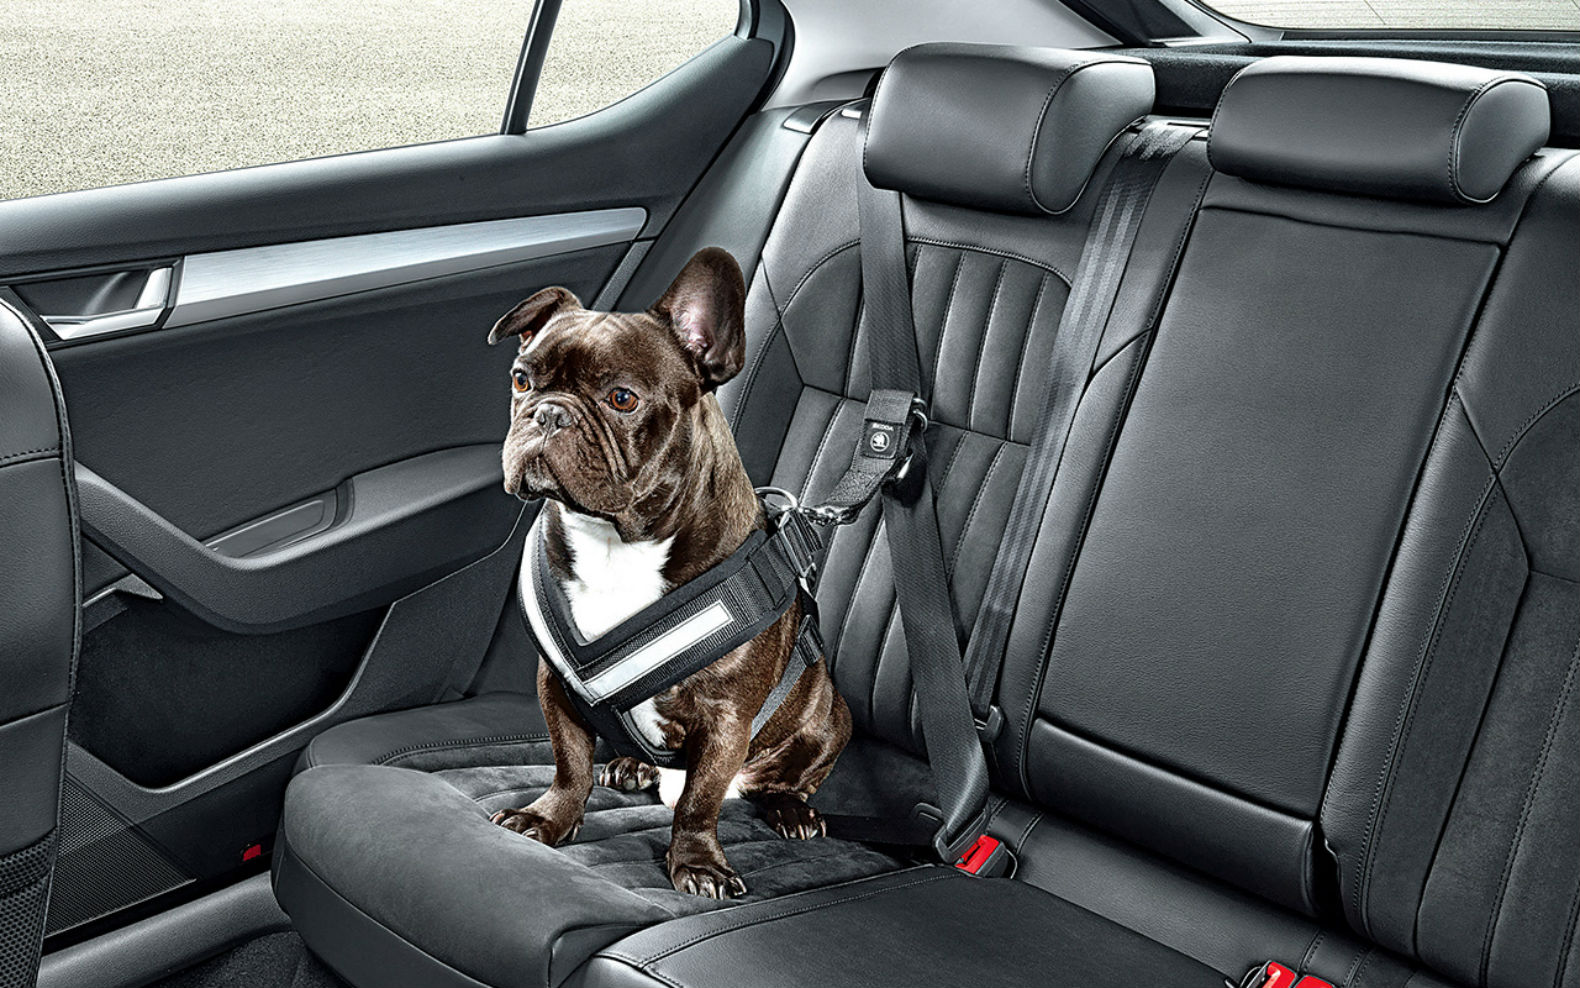 Dog Car Harness >> Canine Car Harness: Doggie Seat Belt Keeps Everyone Safe | Gadgets, Science & Technology